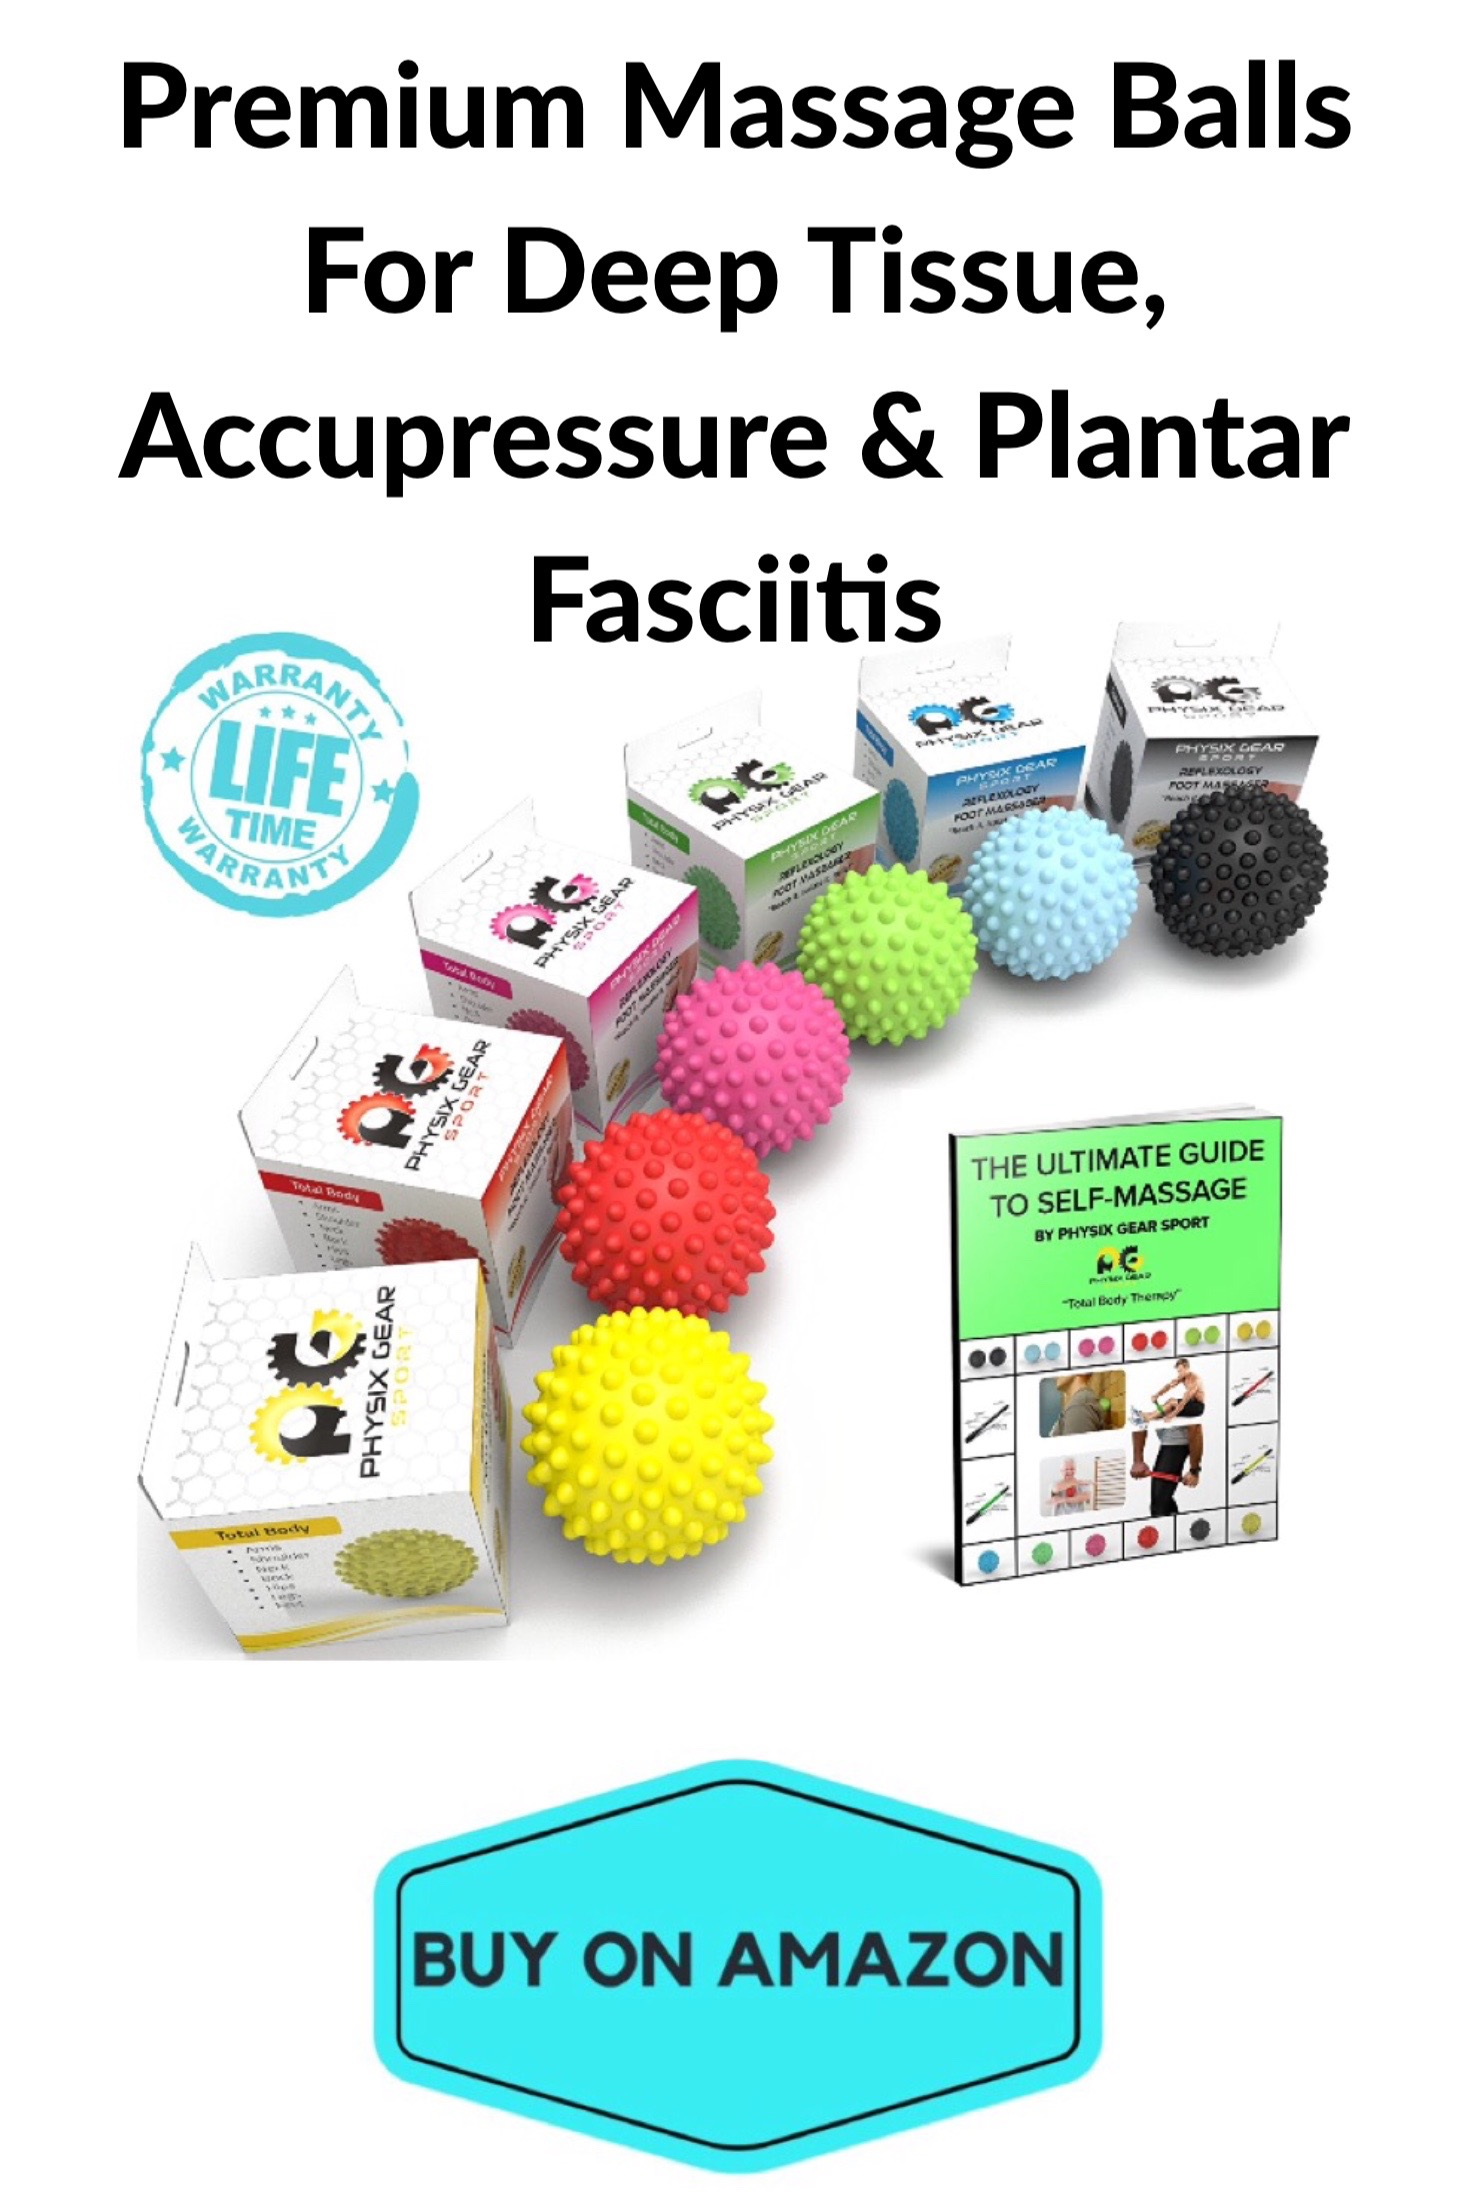 Premium Massage Ball Set For Deep Tissue